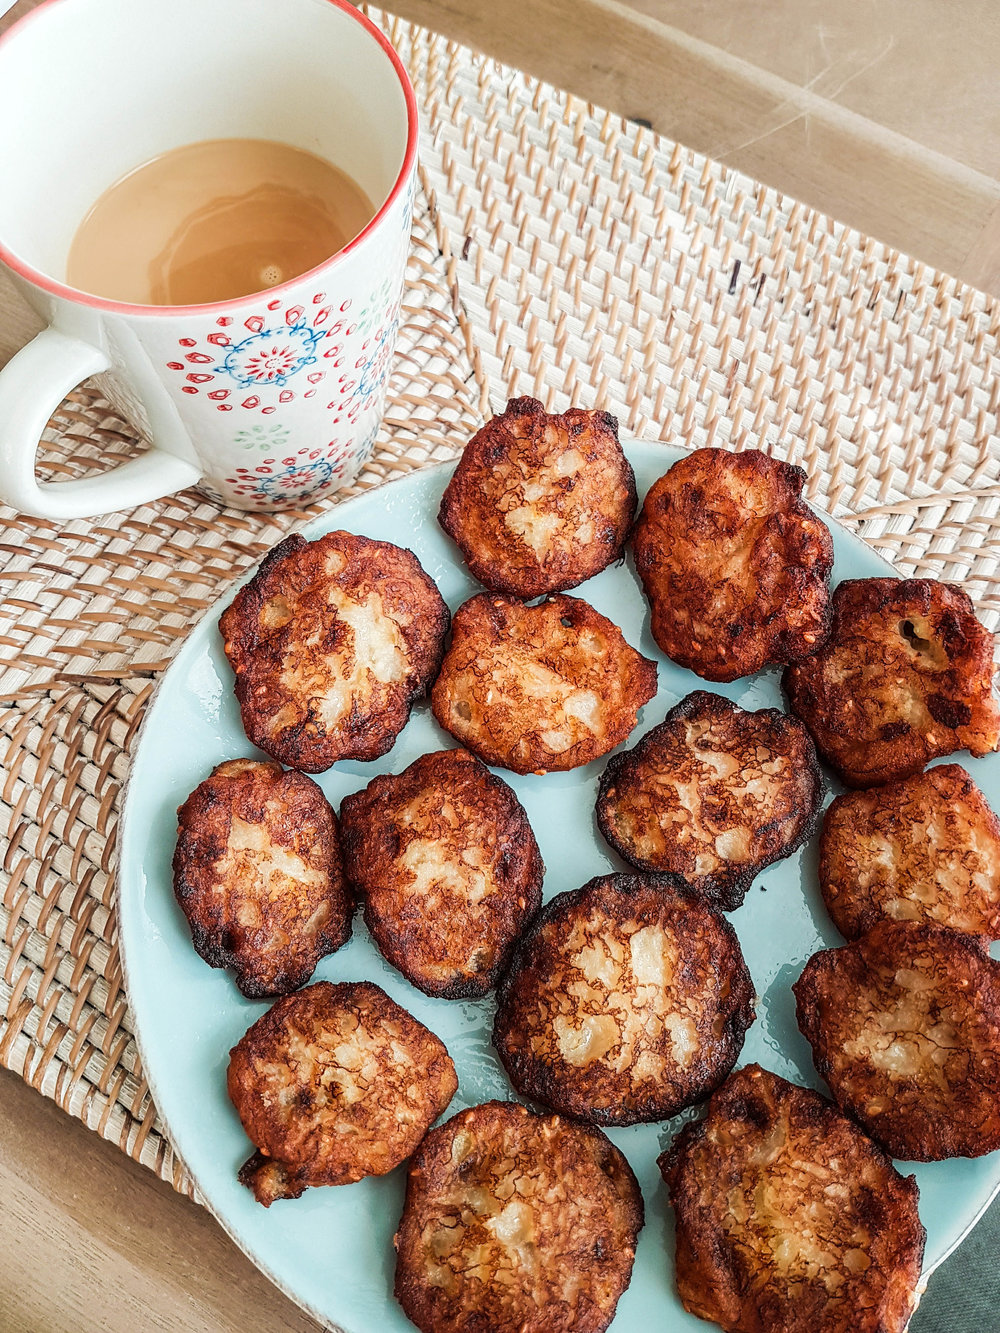 Warm Banana Fritters with a hot cup of Chai